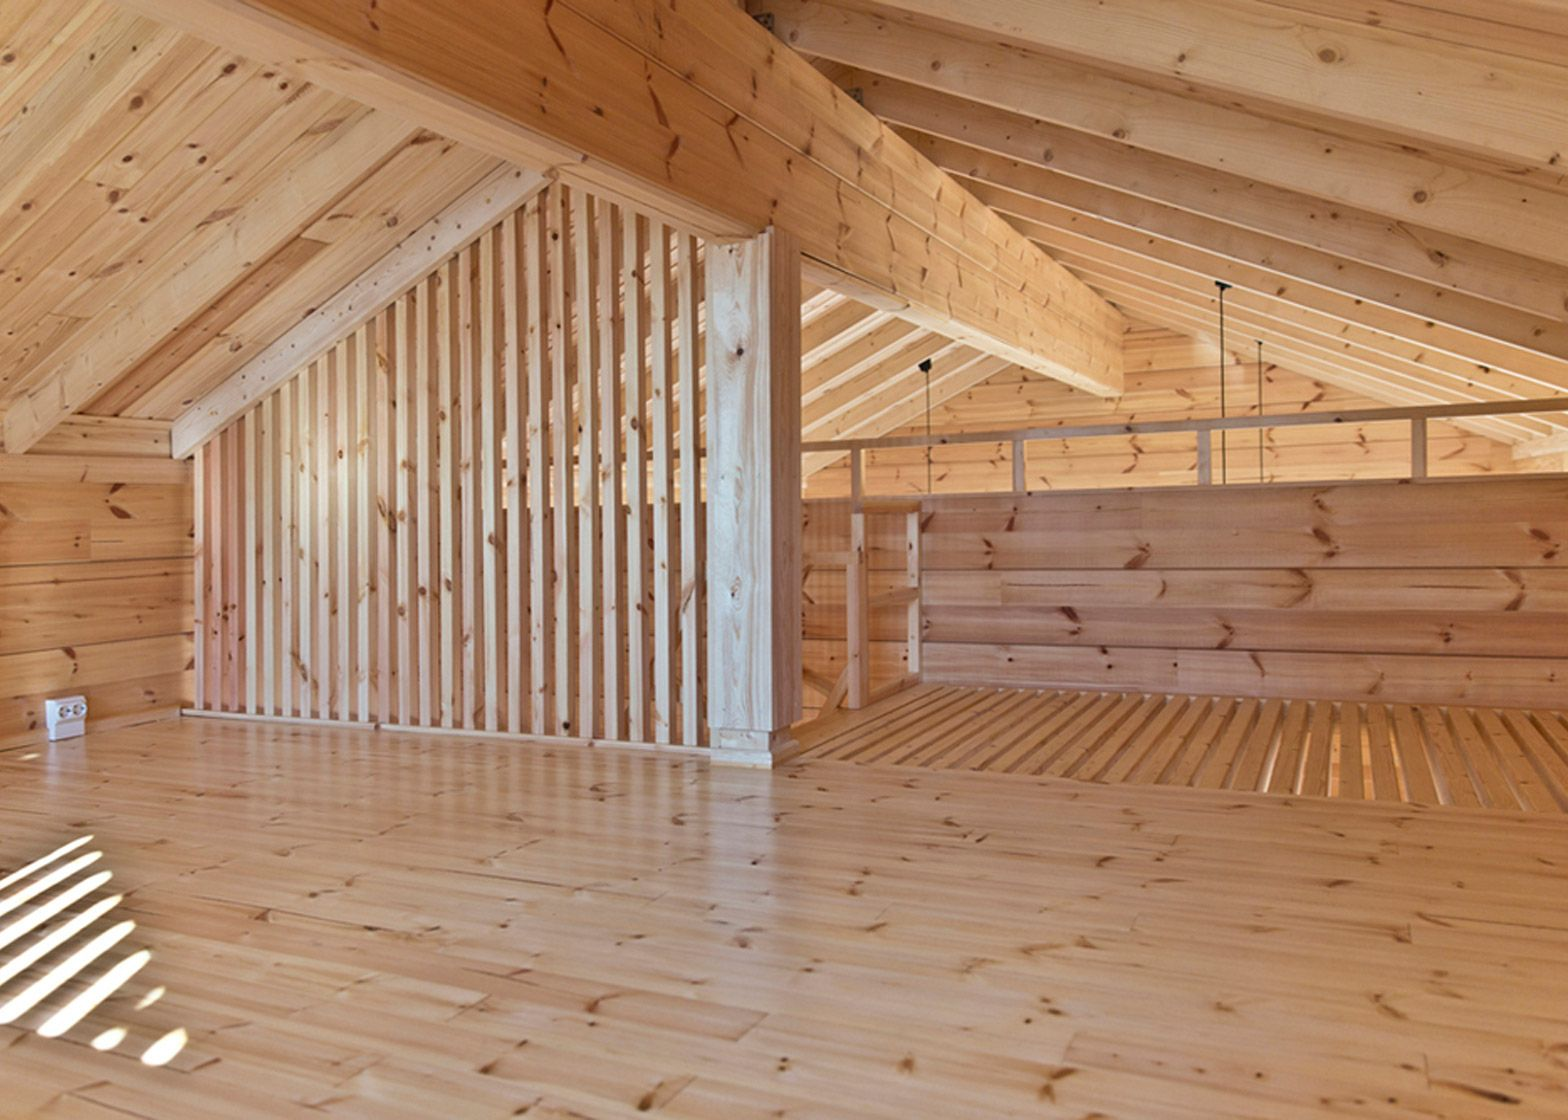 Lake cabin by Sini Kamppari features slatted timber walls and a ...